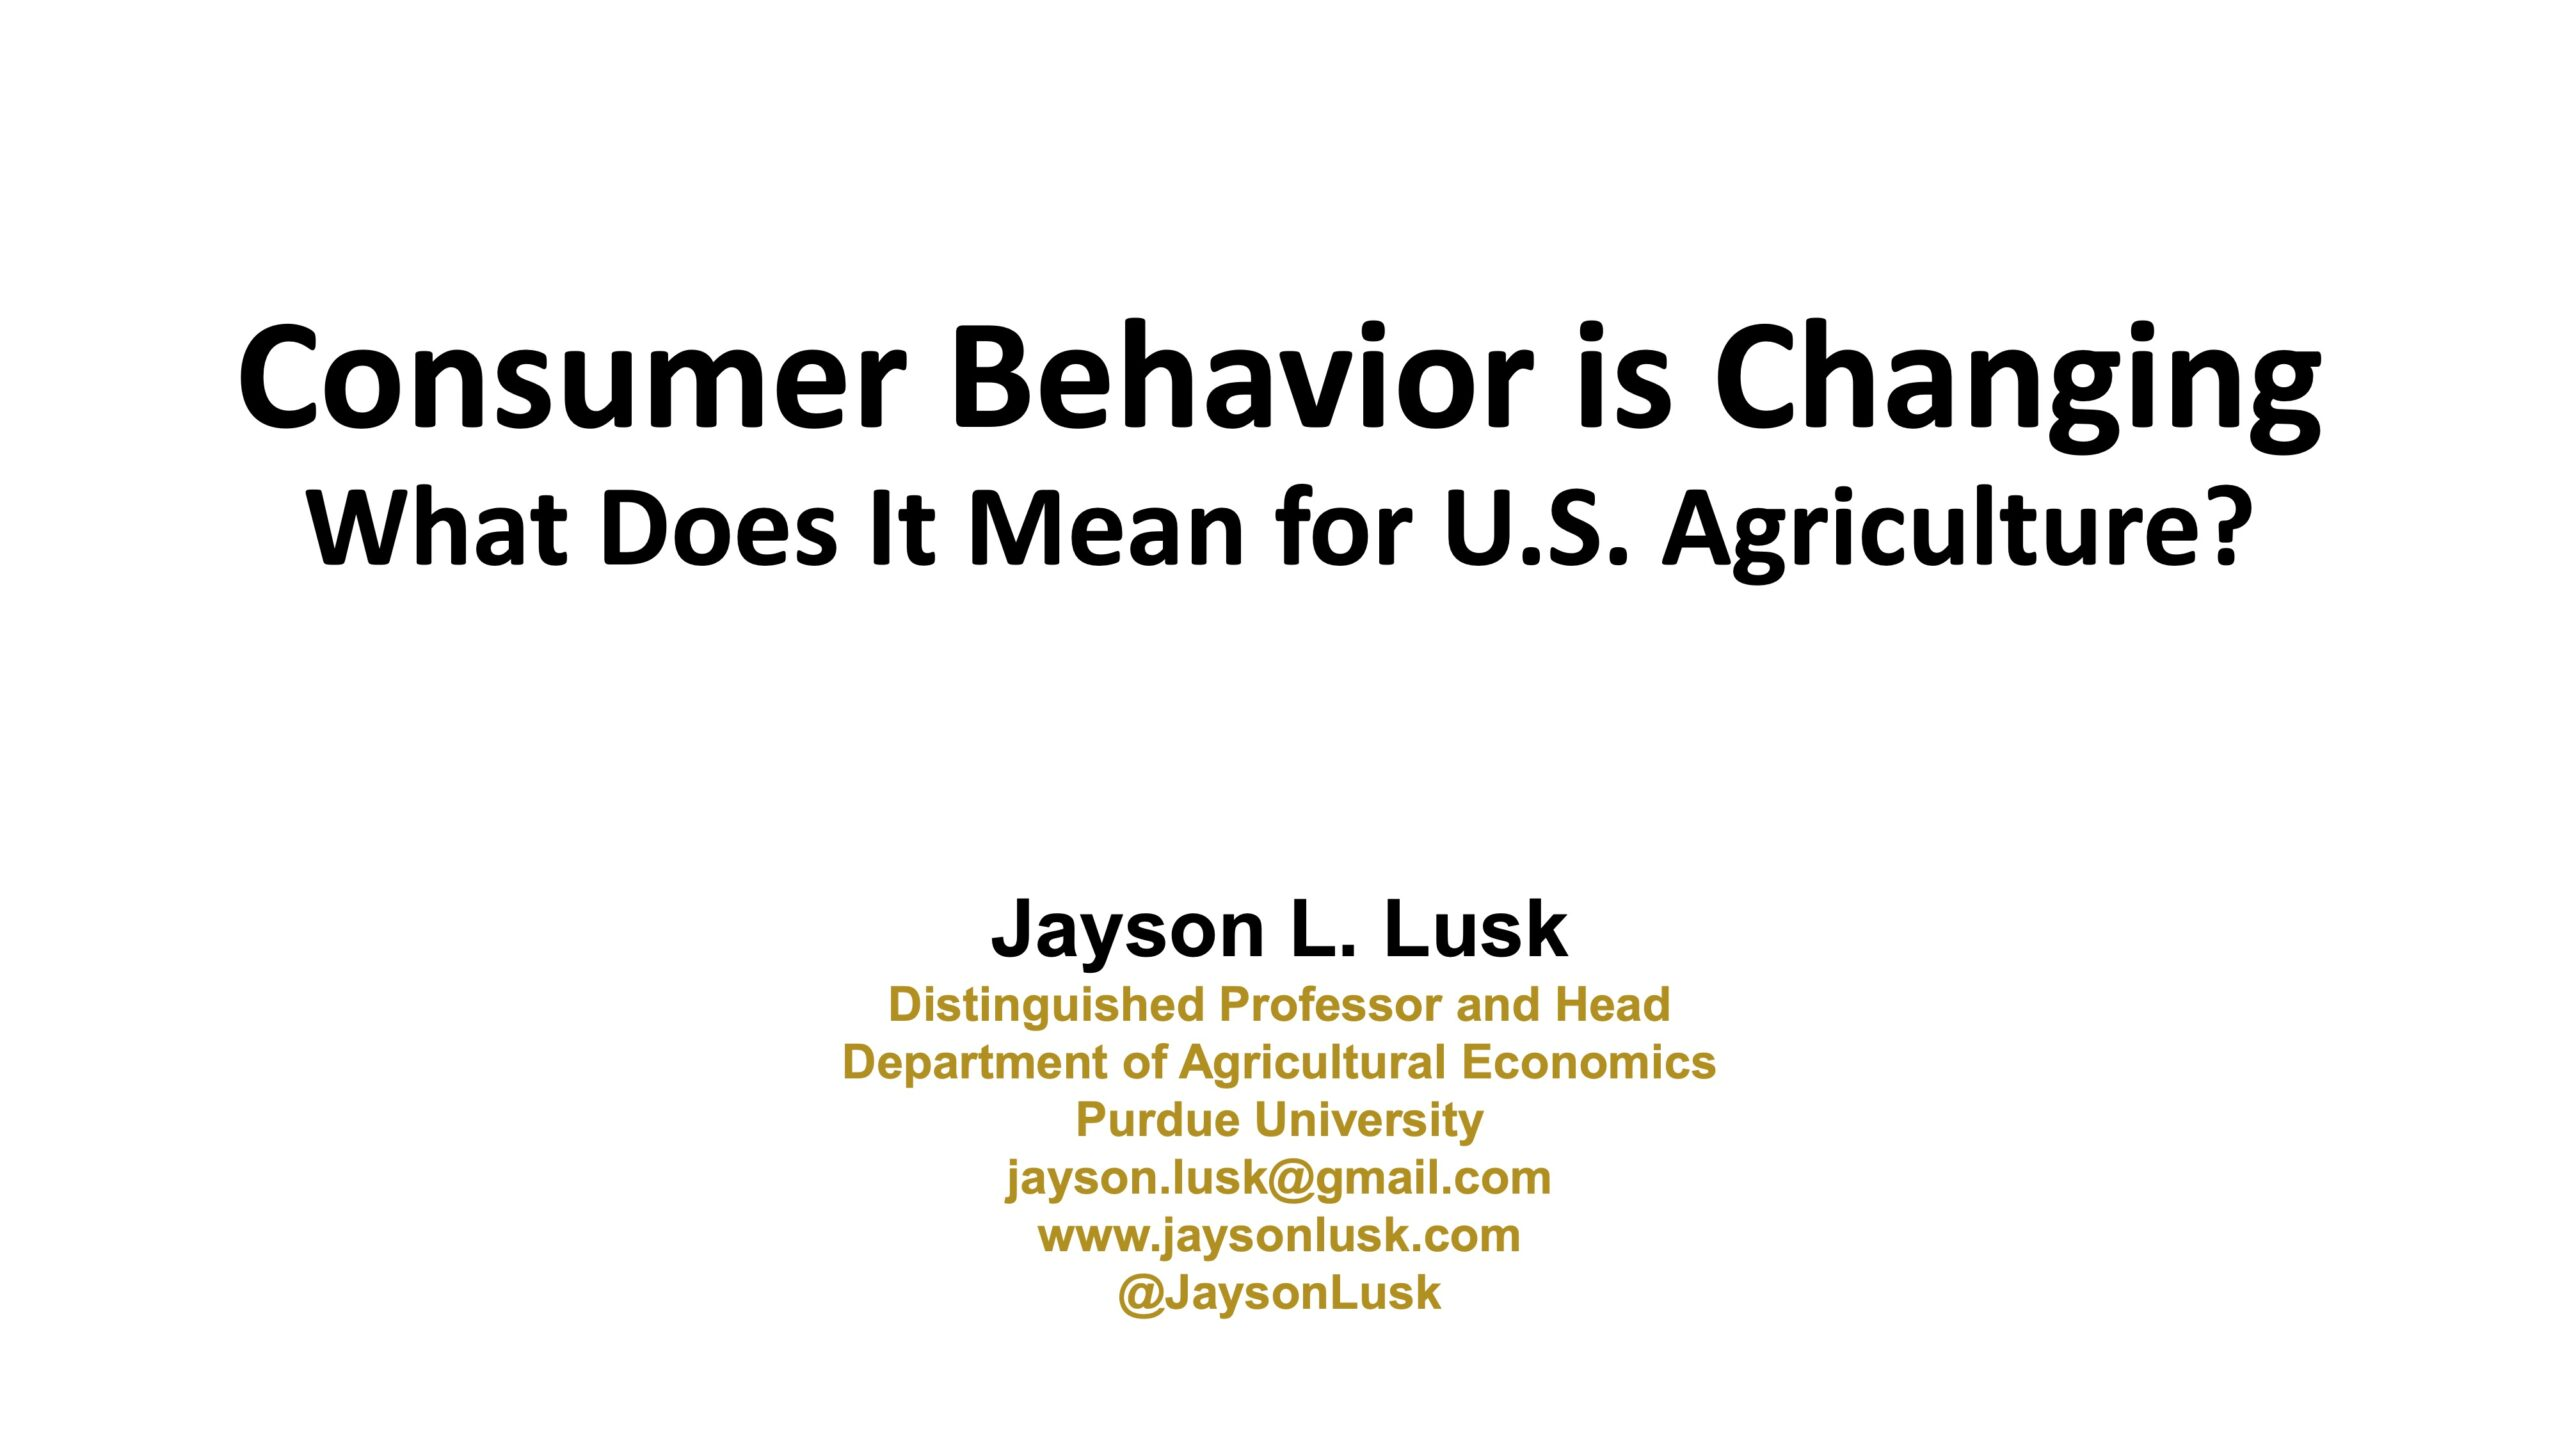 Consumer Behavior Is Changing, What Does It Mean For U.S. Agriculture Top Farmer Conference 2021 presentation